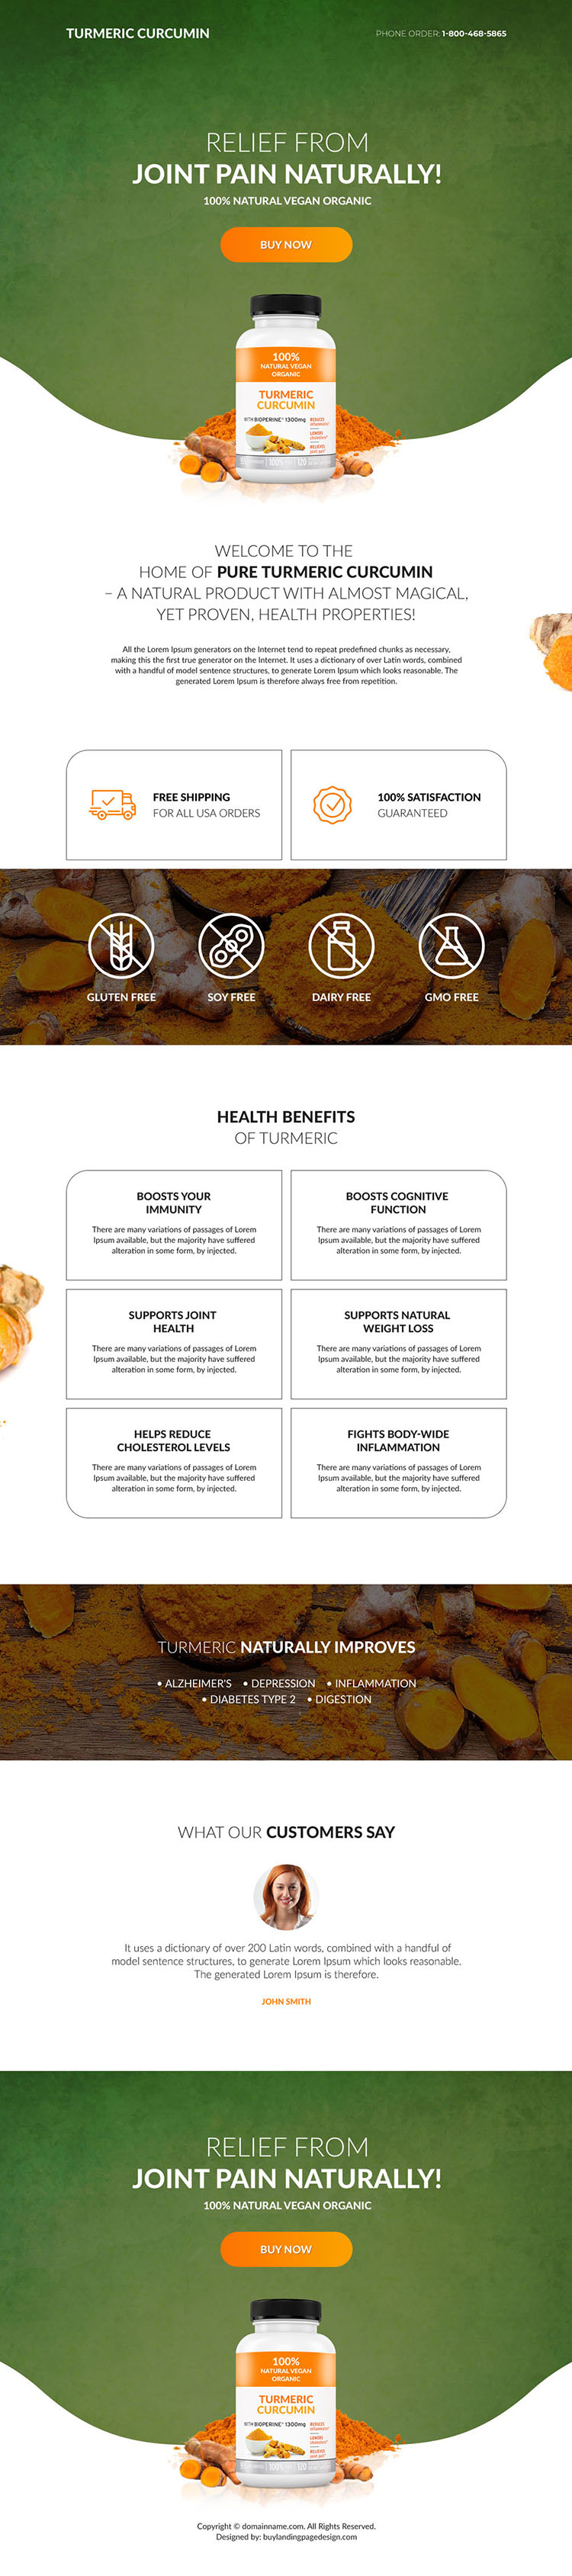 turmeric curcumin pain relief product selling responsive landing page design